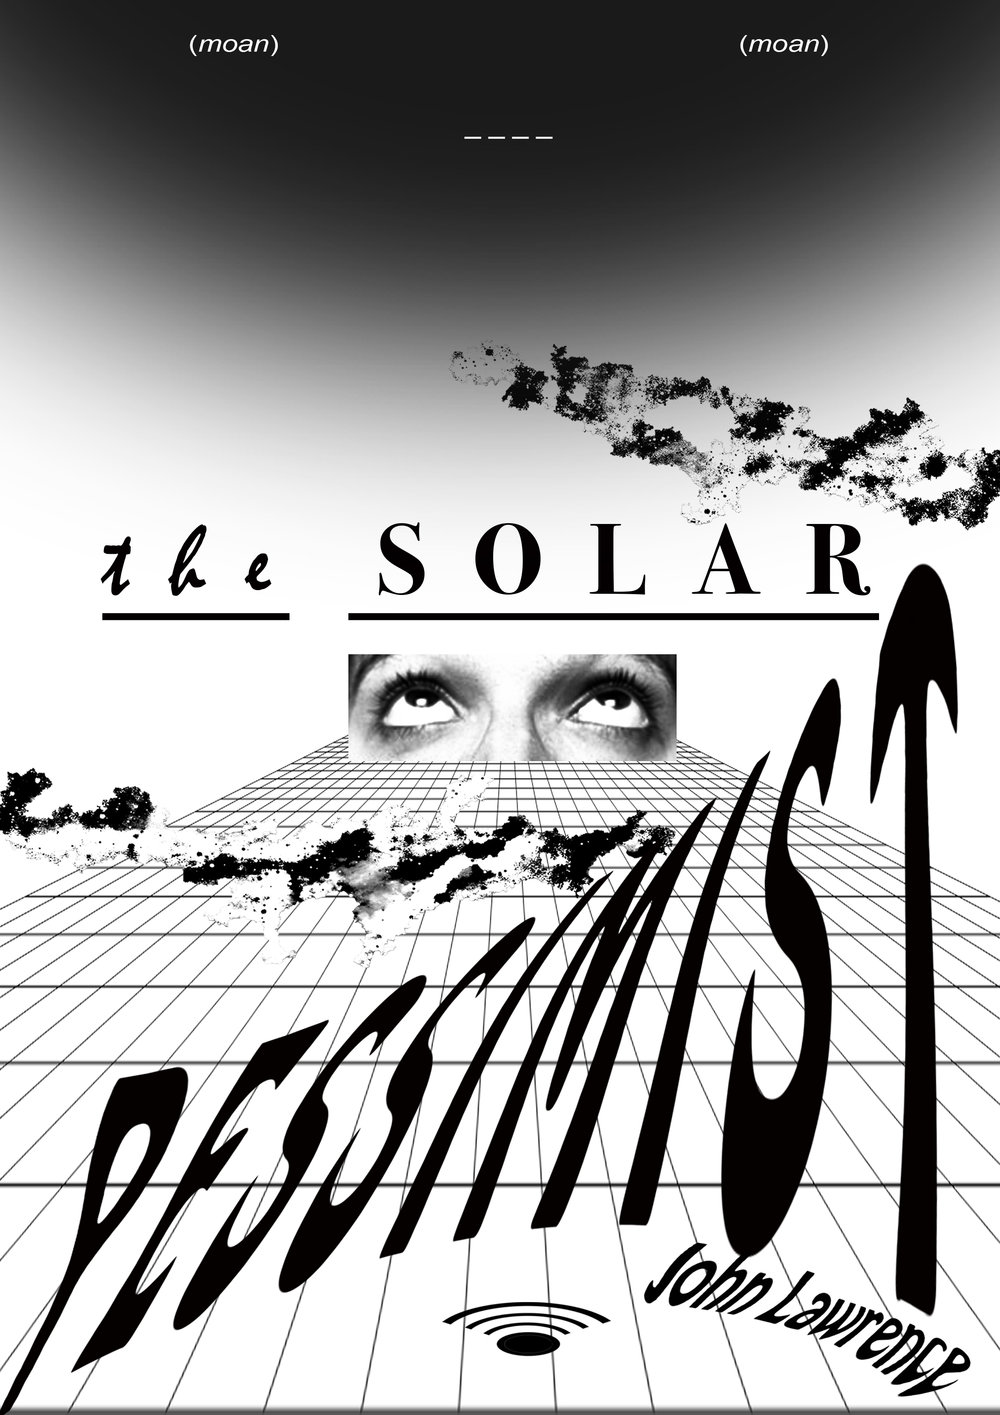 THE SOLAR PESSIMIST